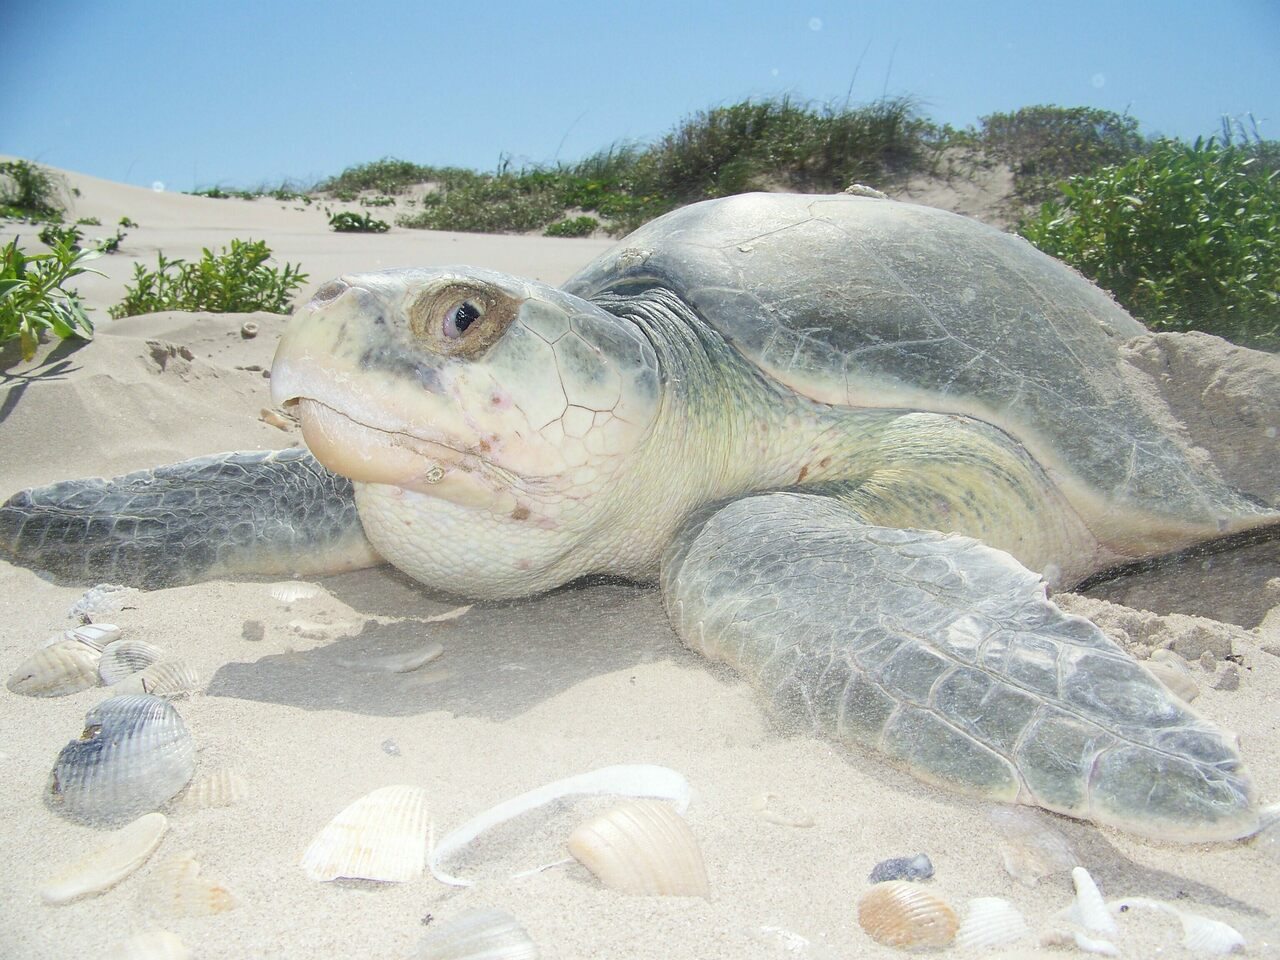 Kemp's ridley sea turtles are an endangered species that live and nest in the Gulf of Mexico. This one was photographed on Padre Island.